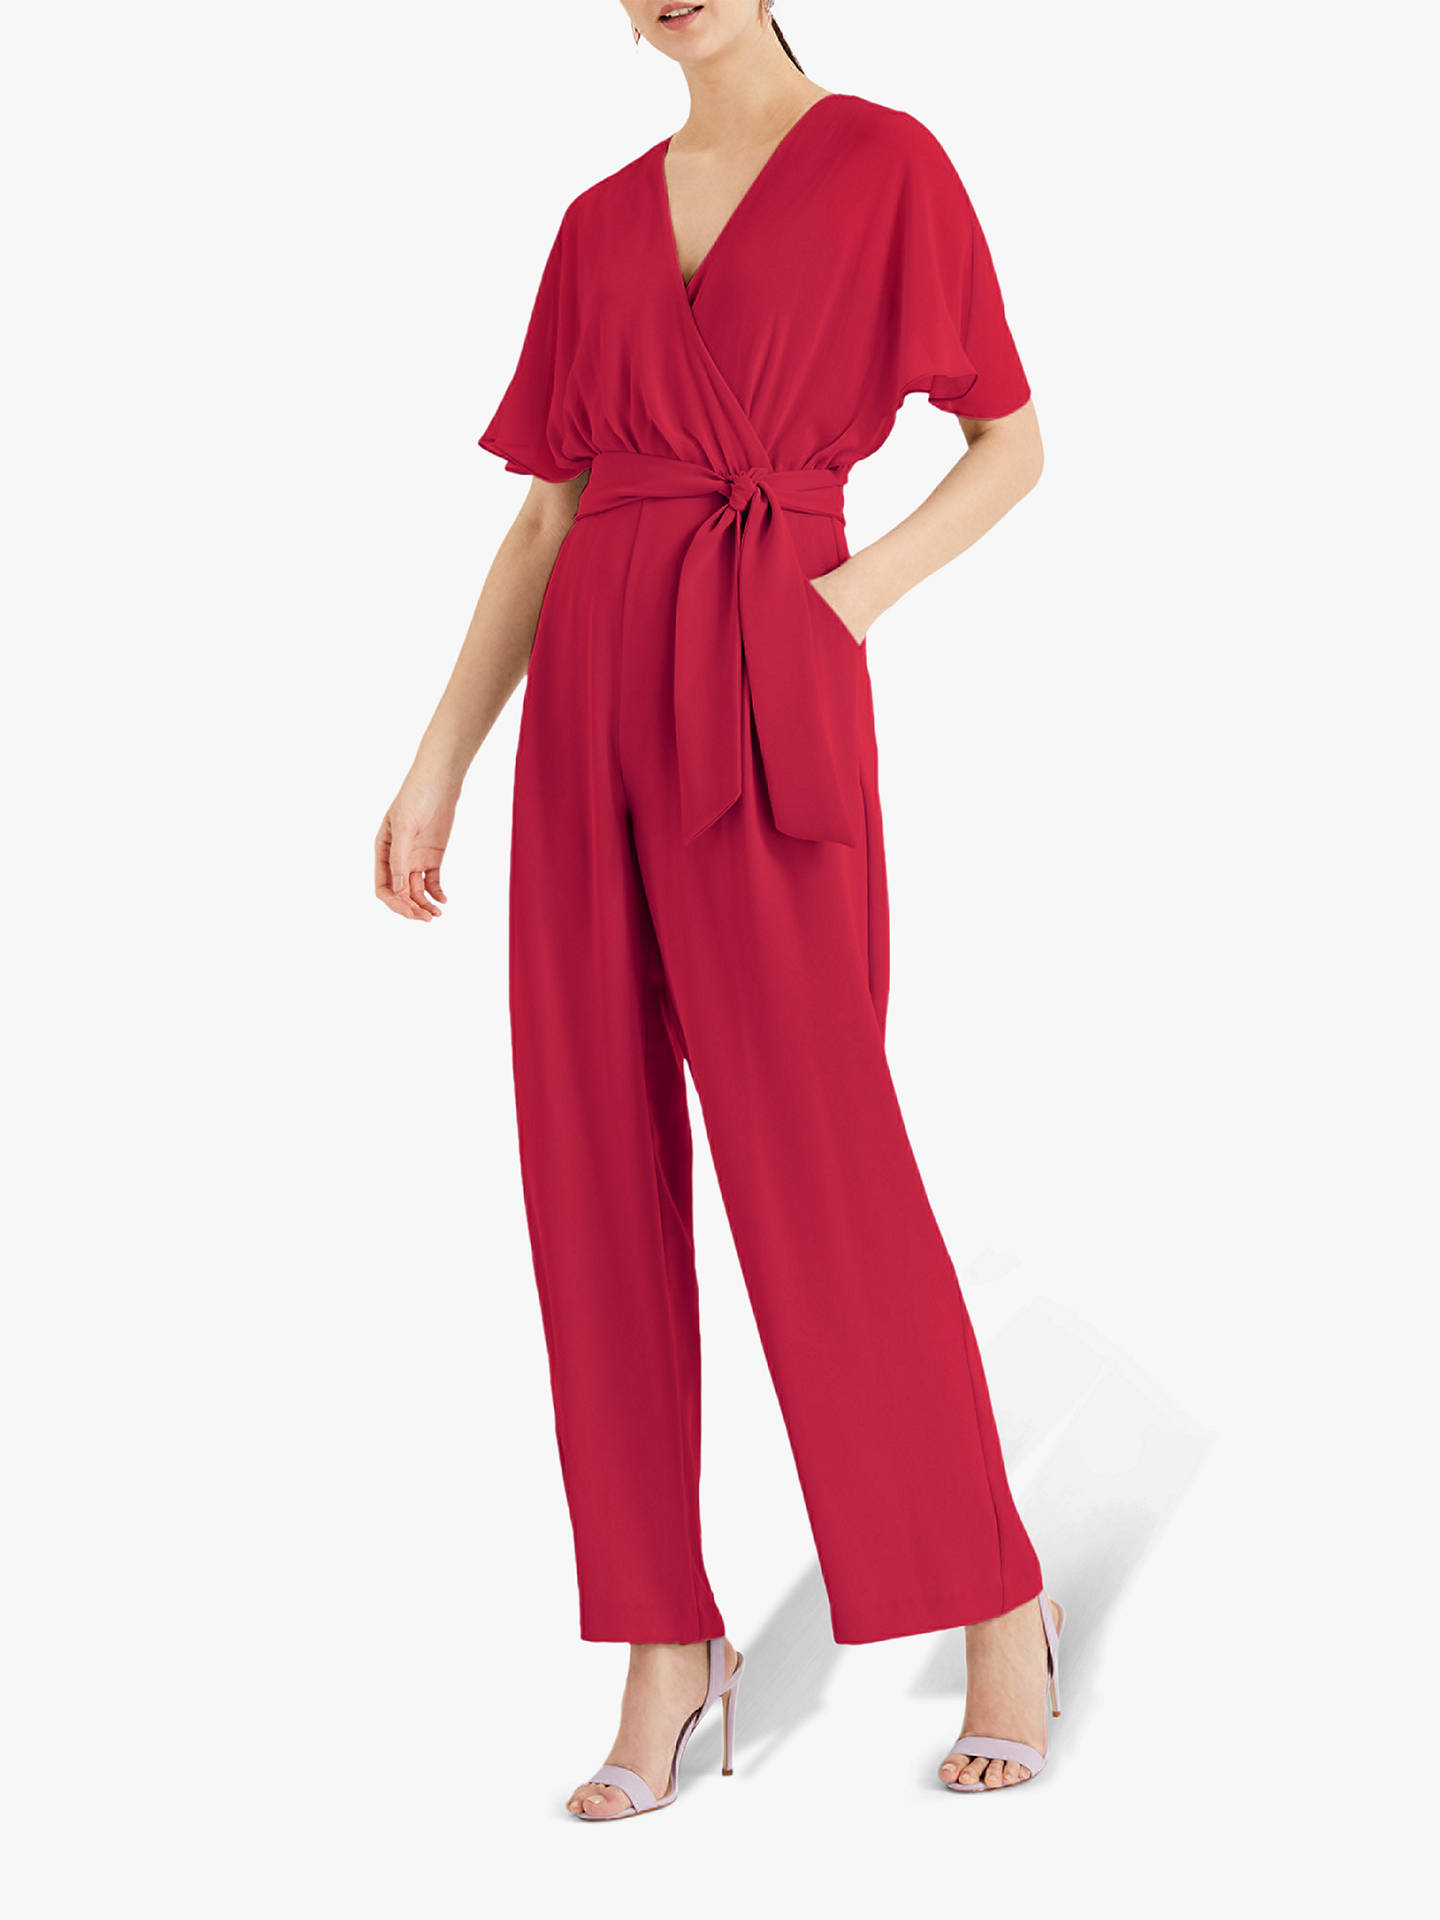 904f57f64f8 Buy Phase Eight Munroe Batwing Tie Waist Jumpsuit